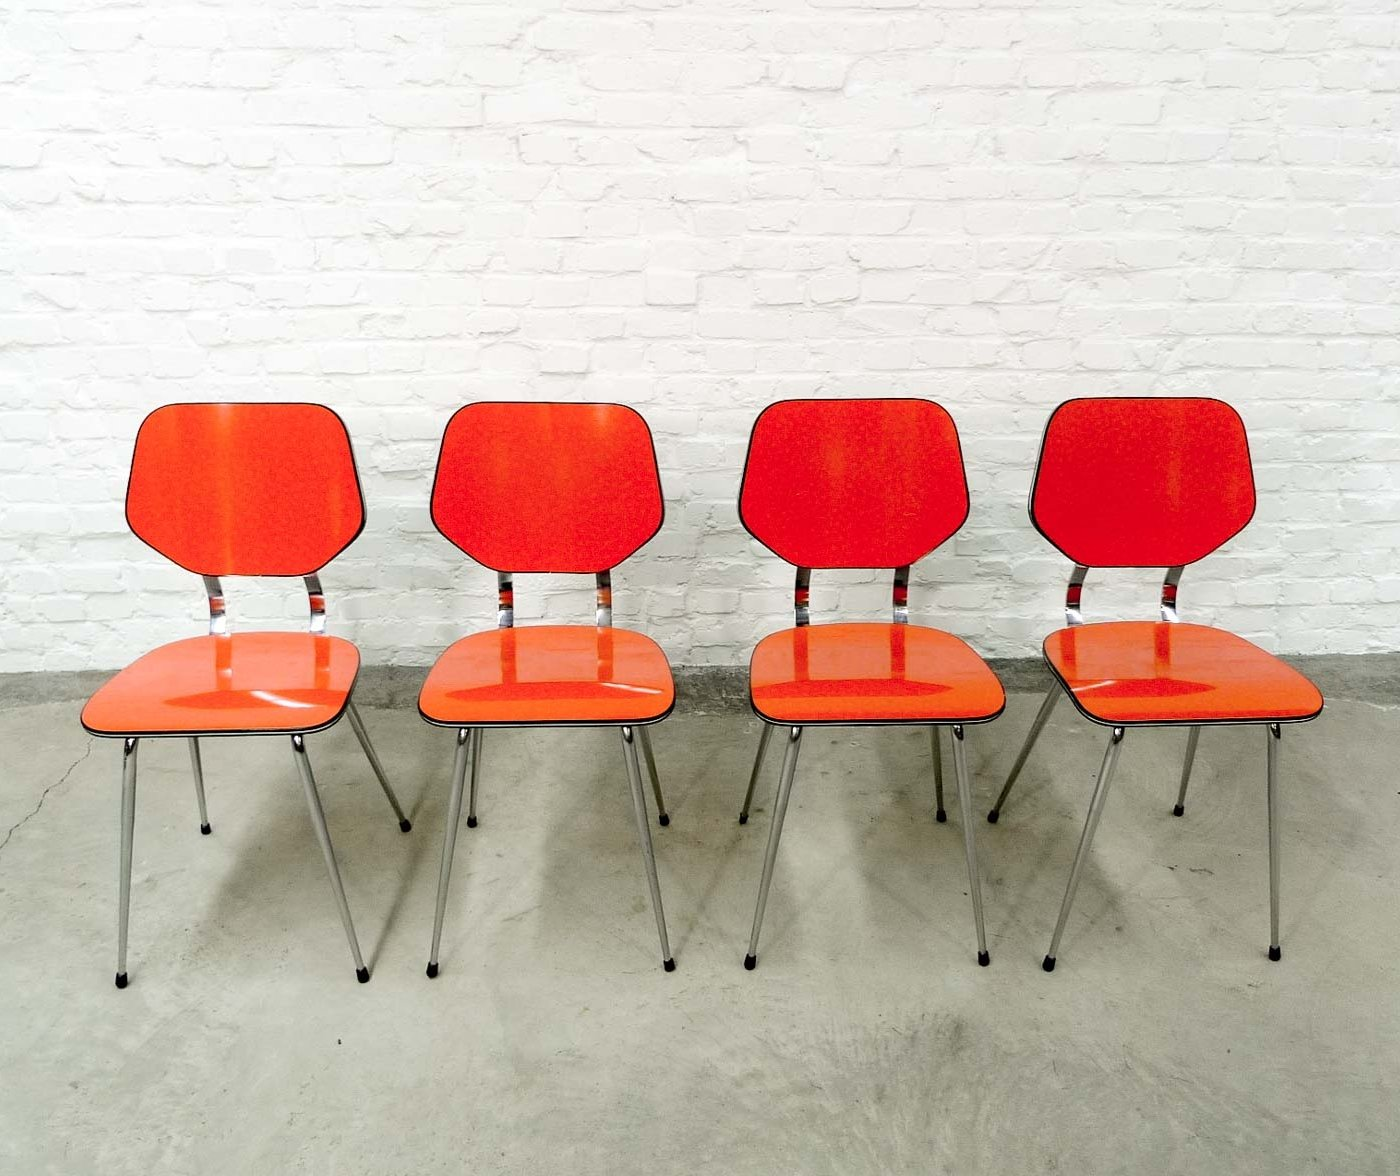 Set Of 4 Kitchen Chairs Set Of 4 Bright Orange Brabantia Kitchen Chairs 1960s